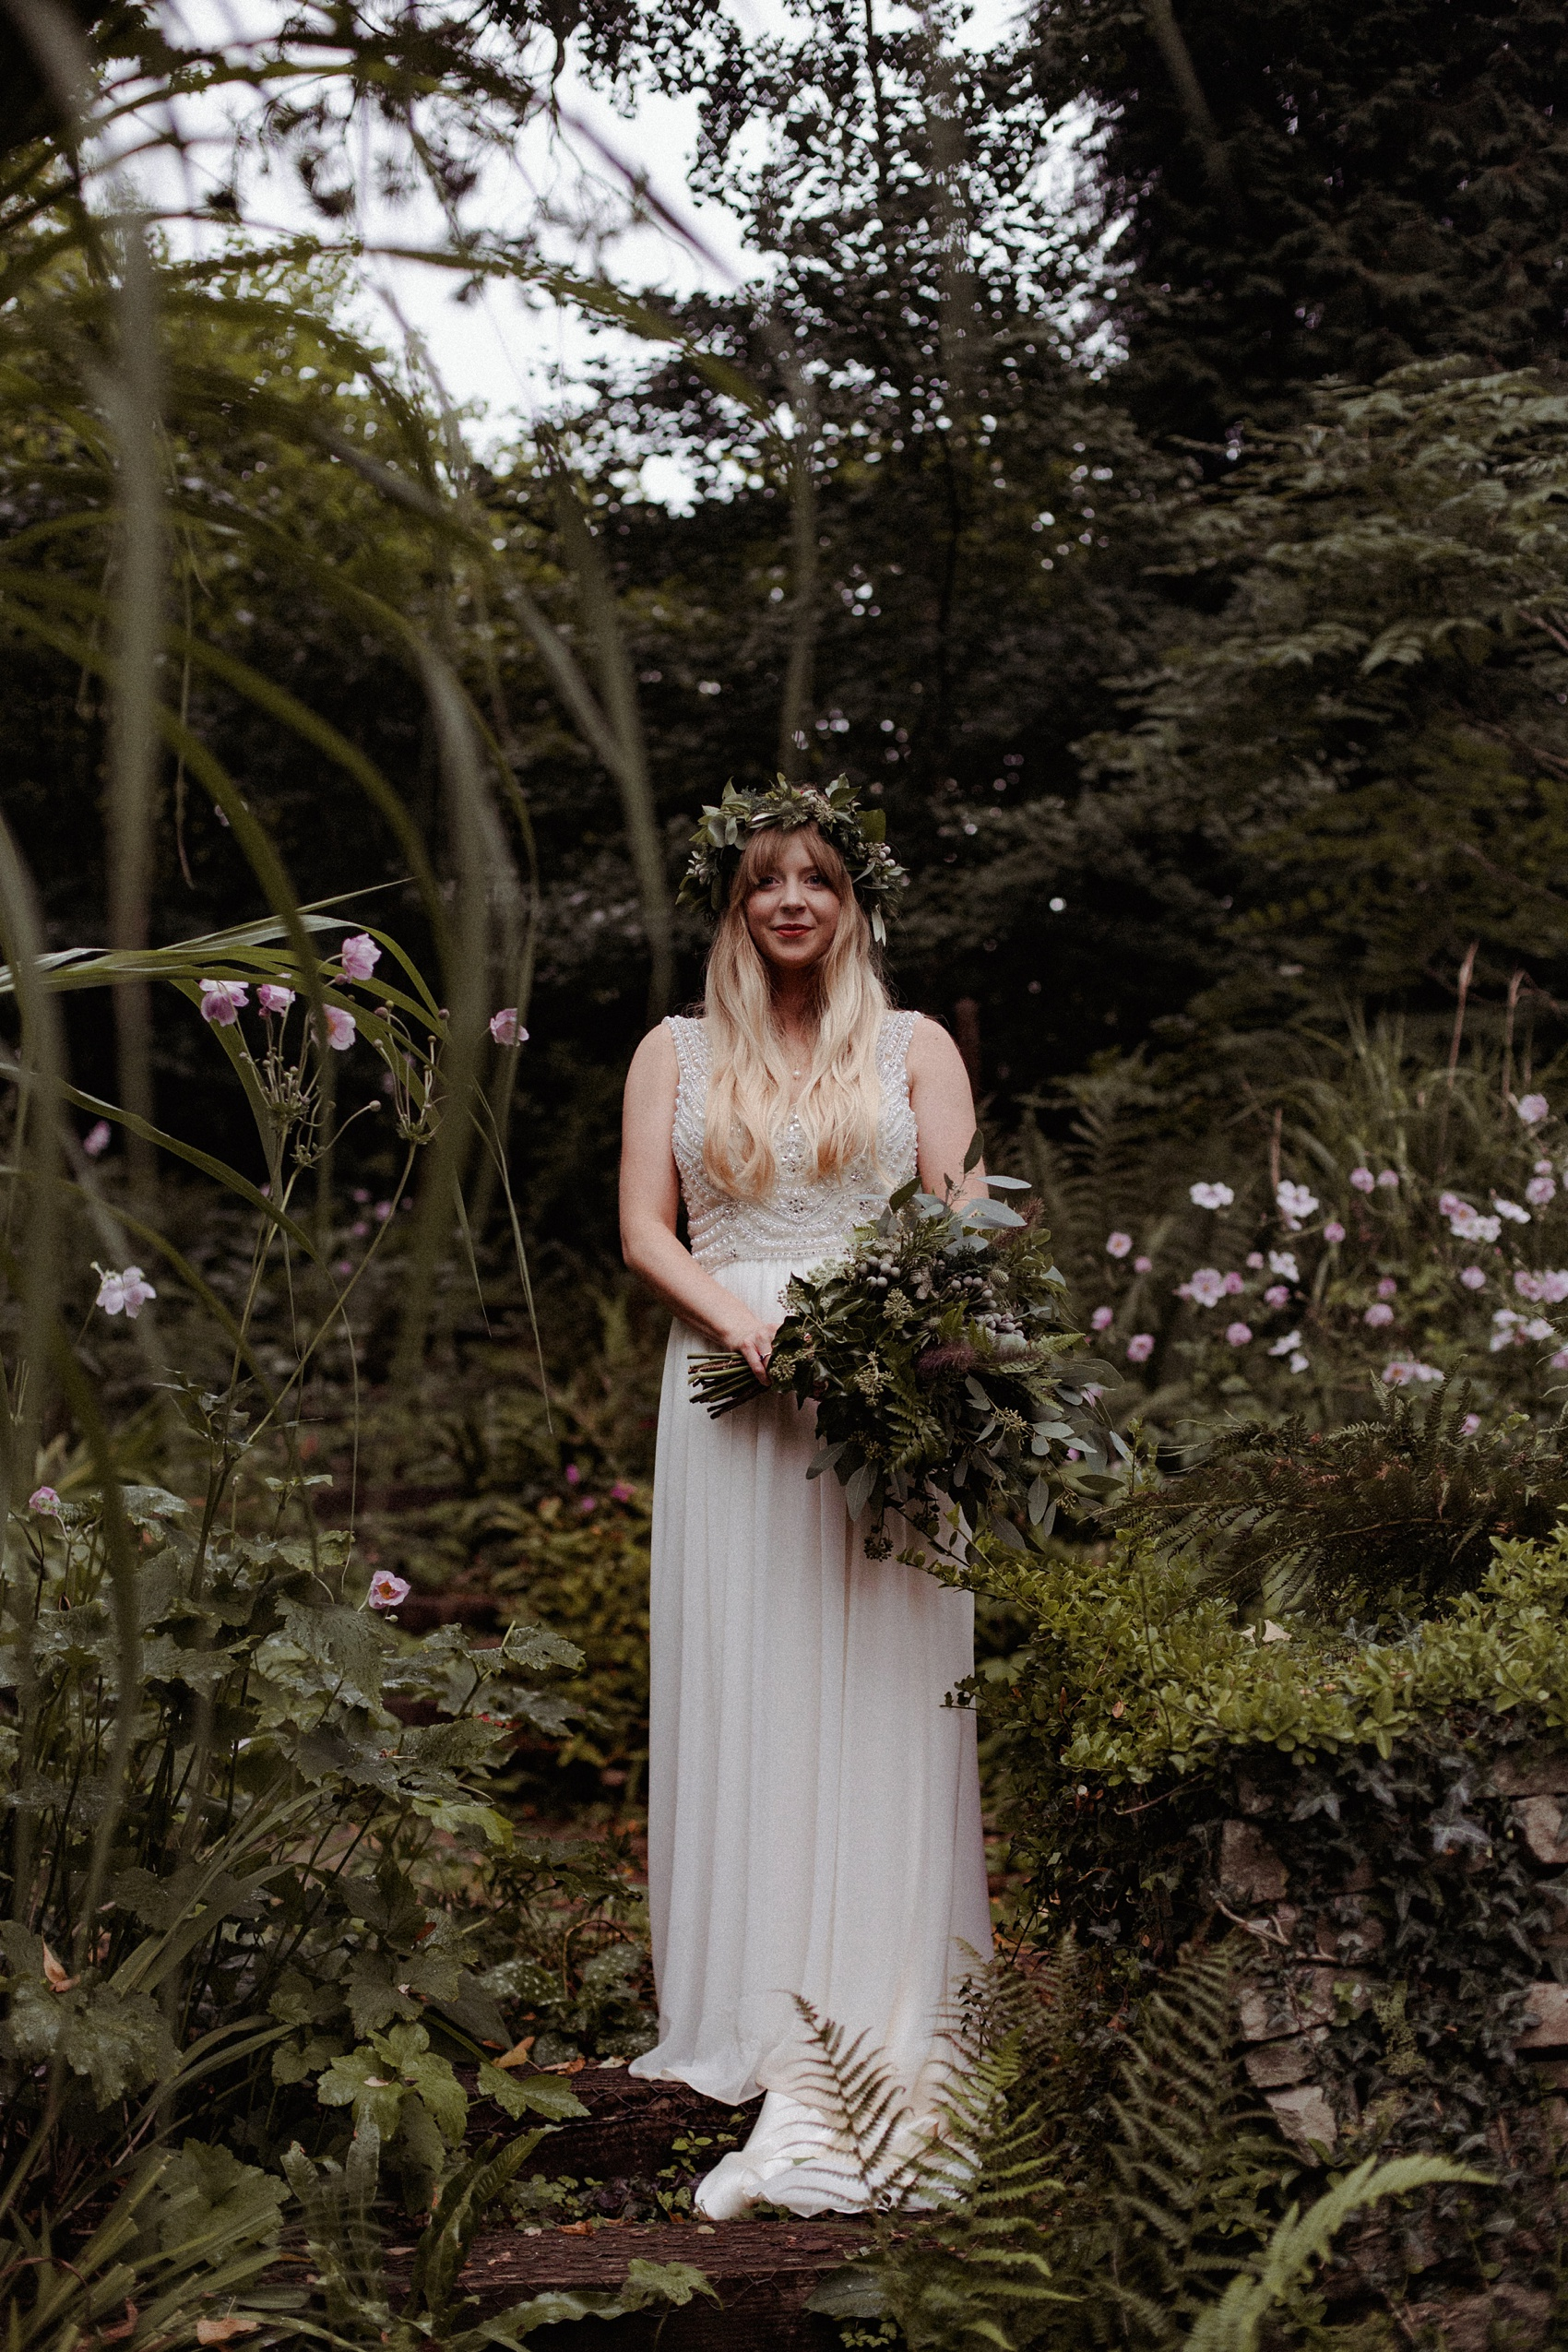 Lusan Mandongus dress colourful origami woodland wedding - 1000 Origami Paper Cranes + Hearts For A Festival Inspired Wedding